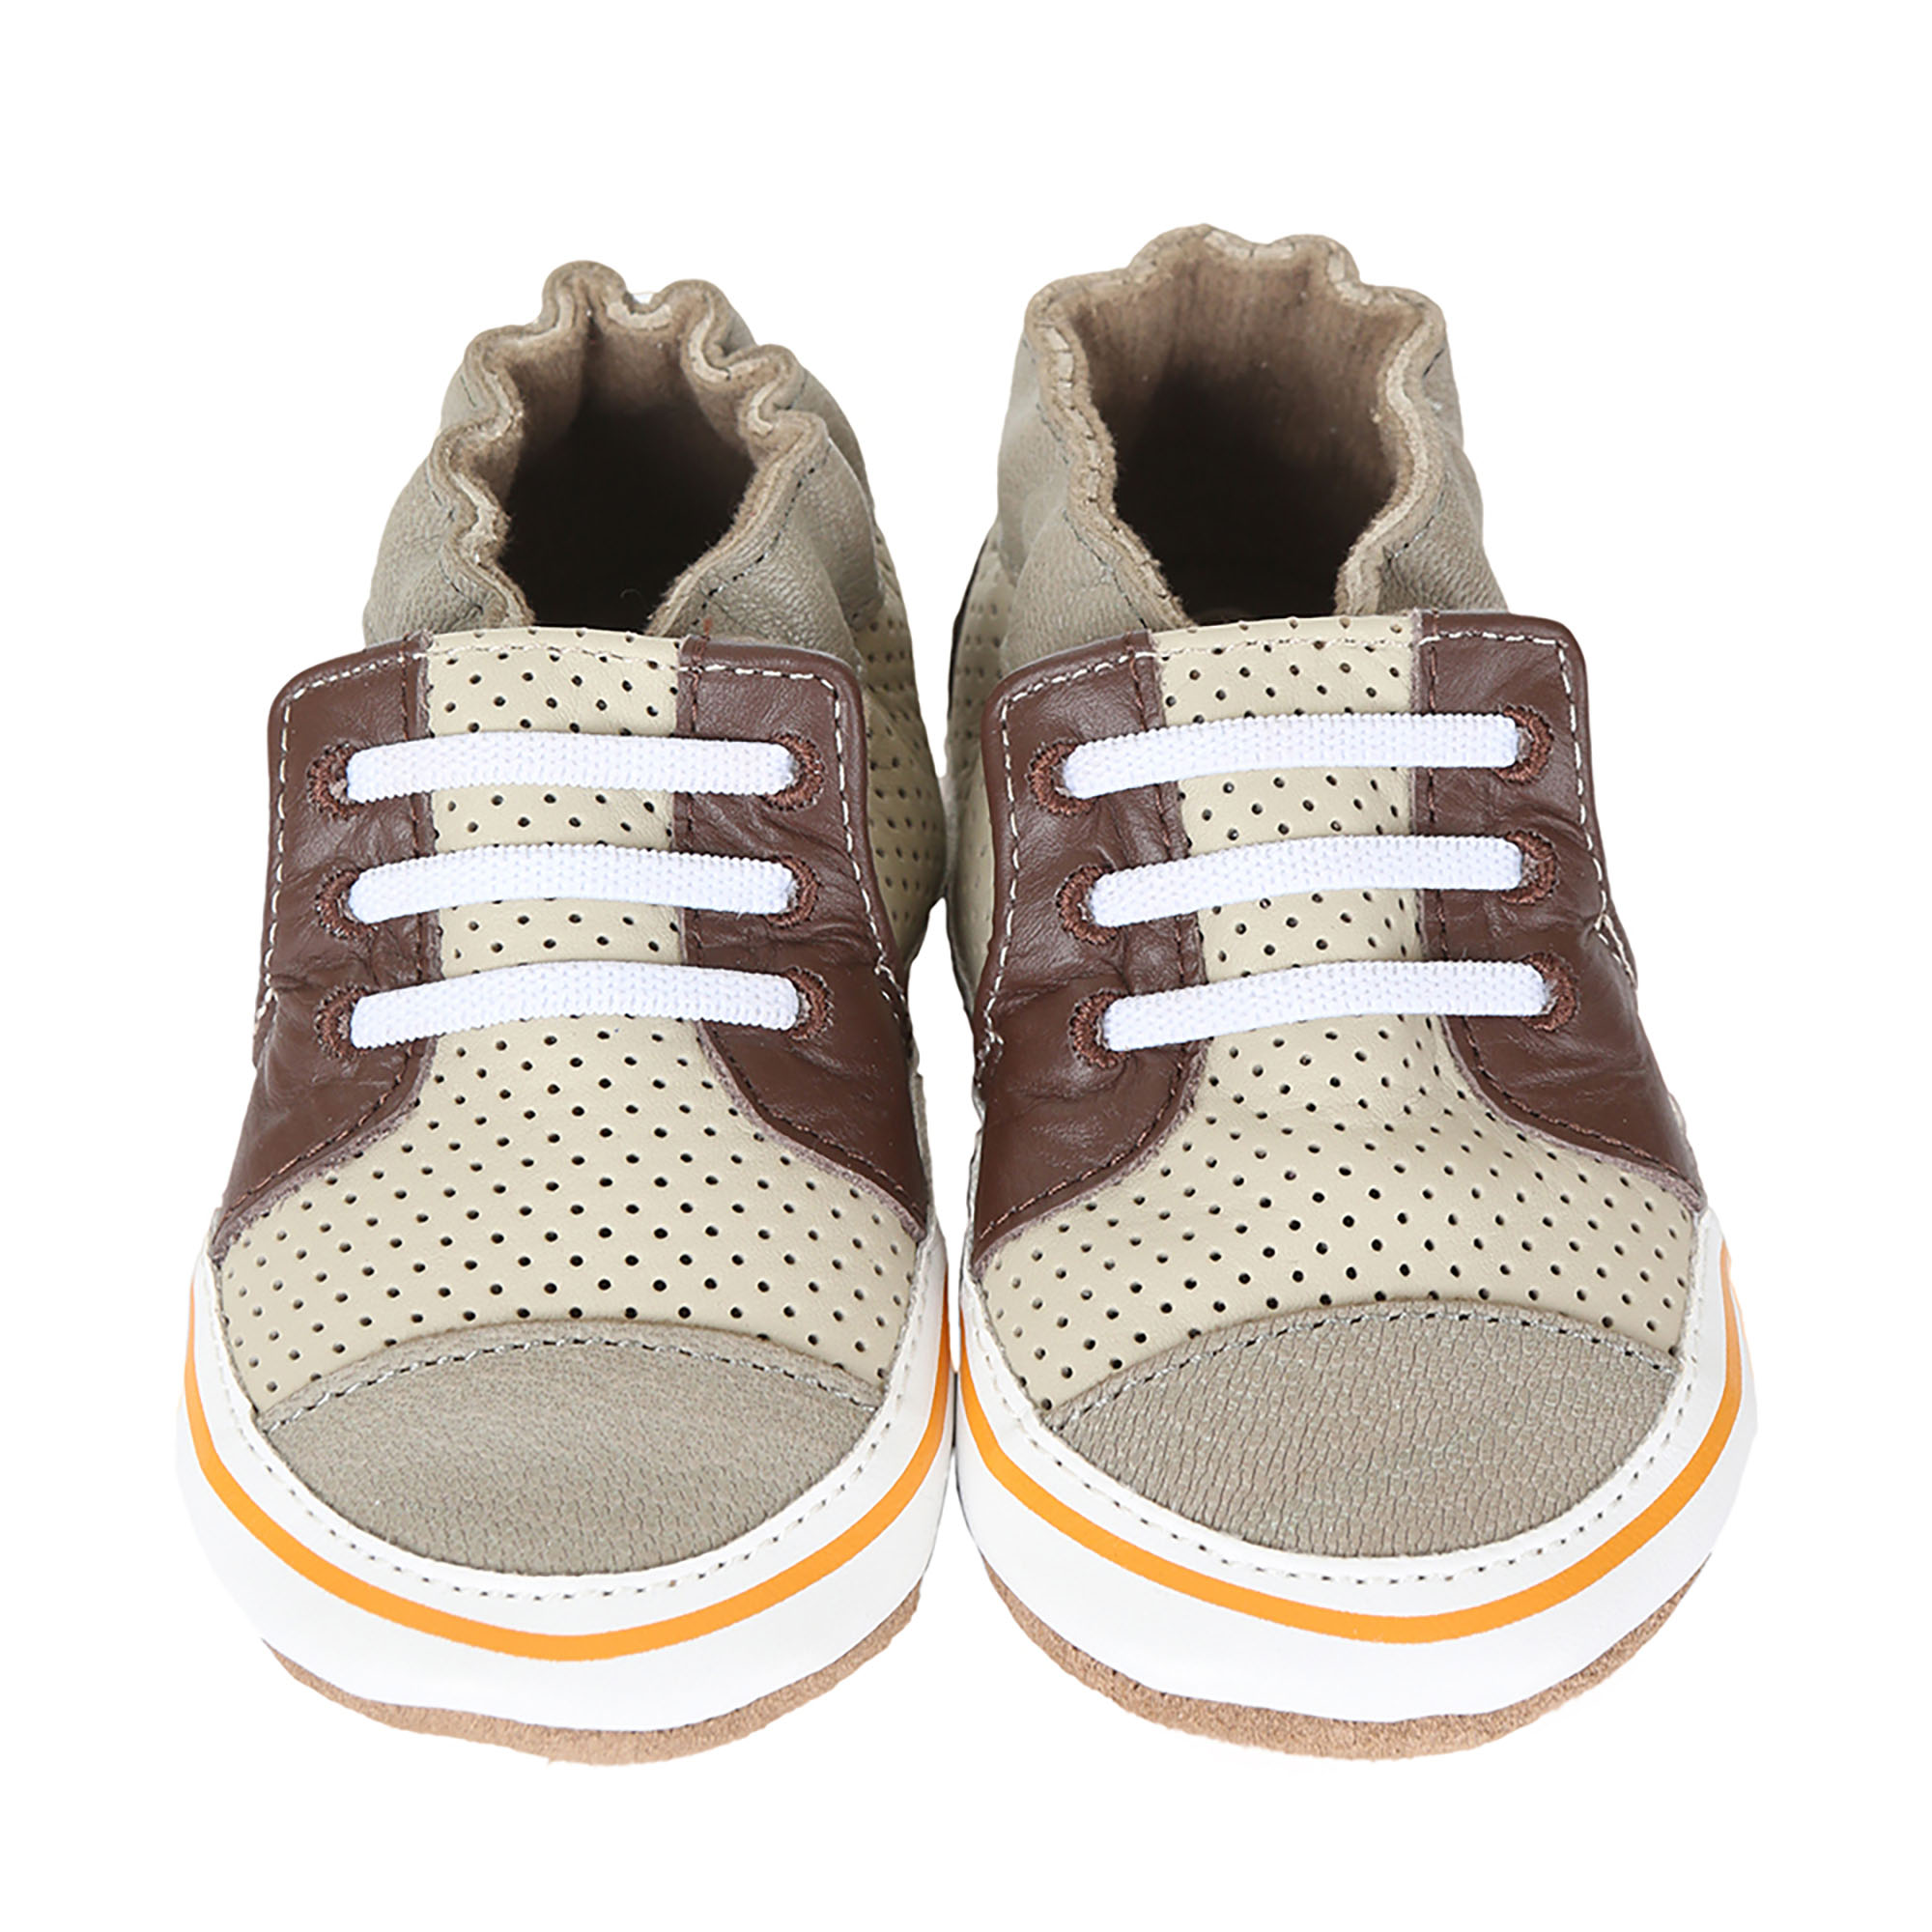 robeez-soft-sole-baby-shoes-trendy-trainer-taupe